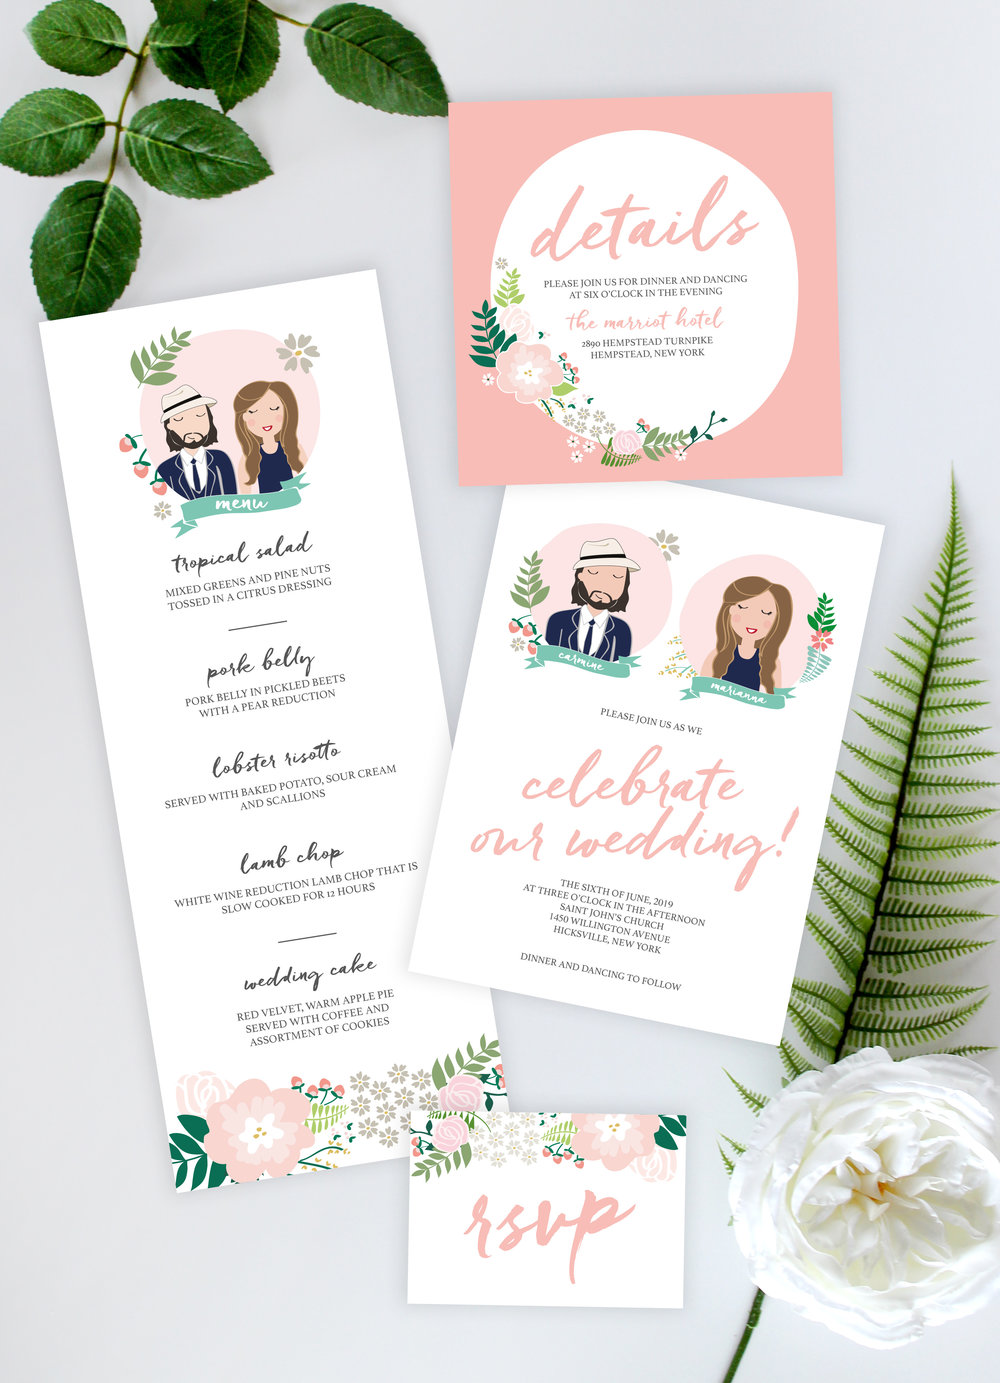 custom portraits wedding invitations by yellow heart art.jpg